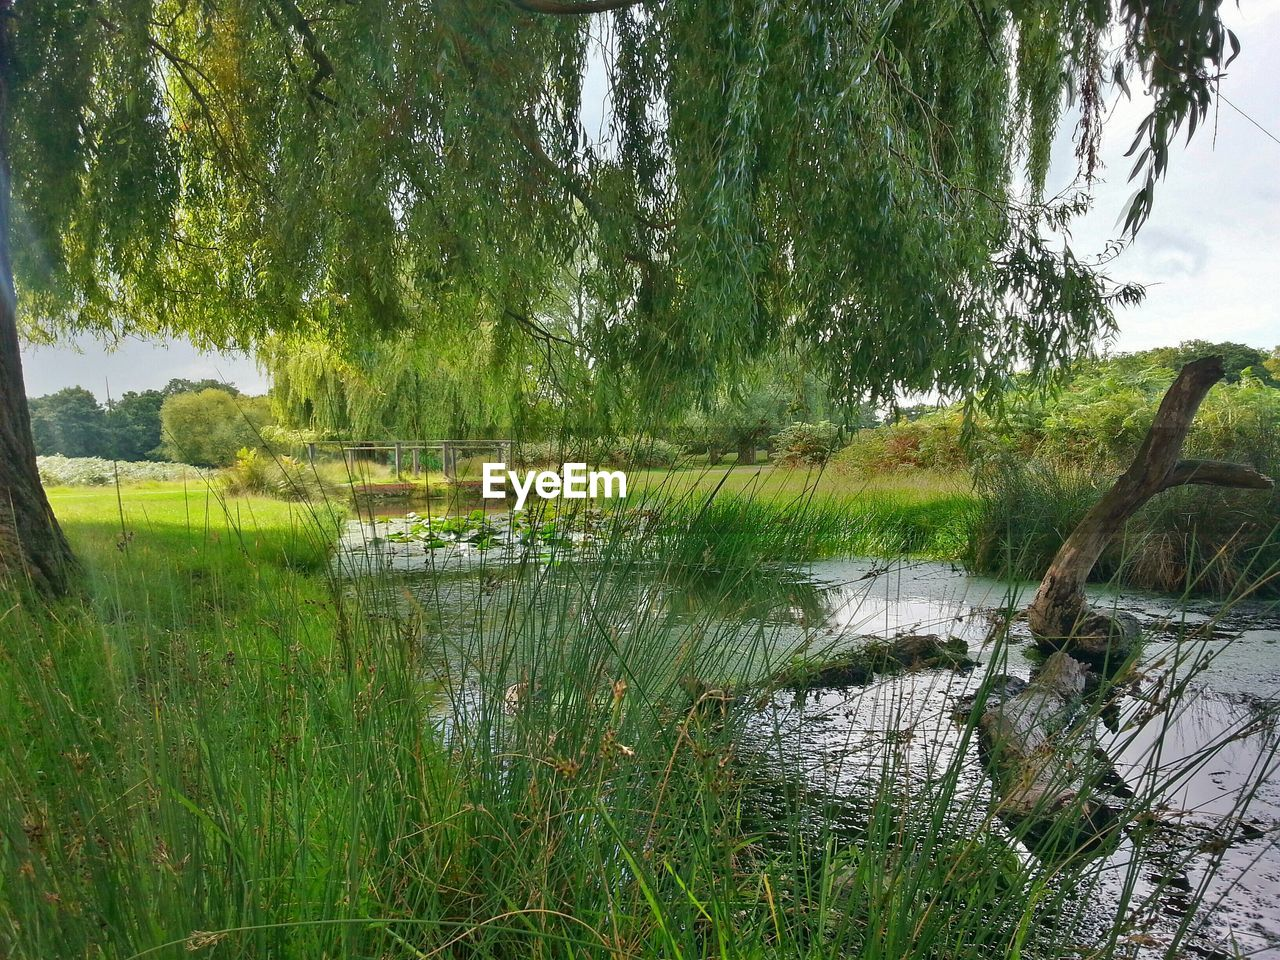 tree, water, nature, lake, growth, grass, green color, tranquil scene, beauty in nature, tranquility, reflection, scenics, outdoors, no people, day, forest, landscape, plant, swamp, sky